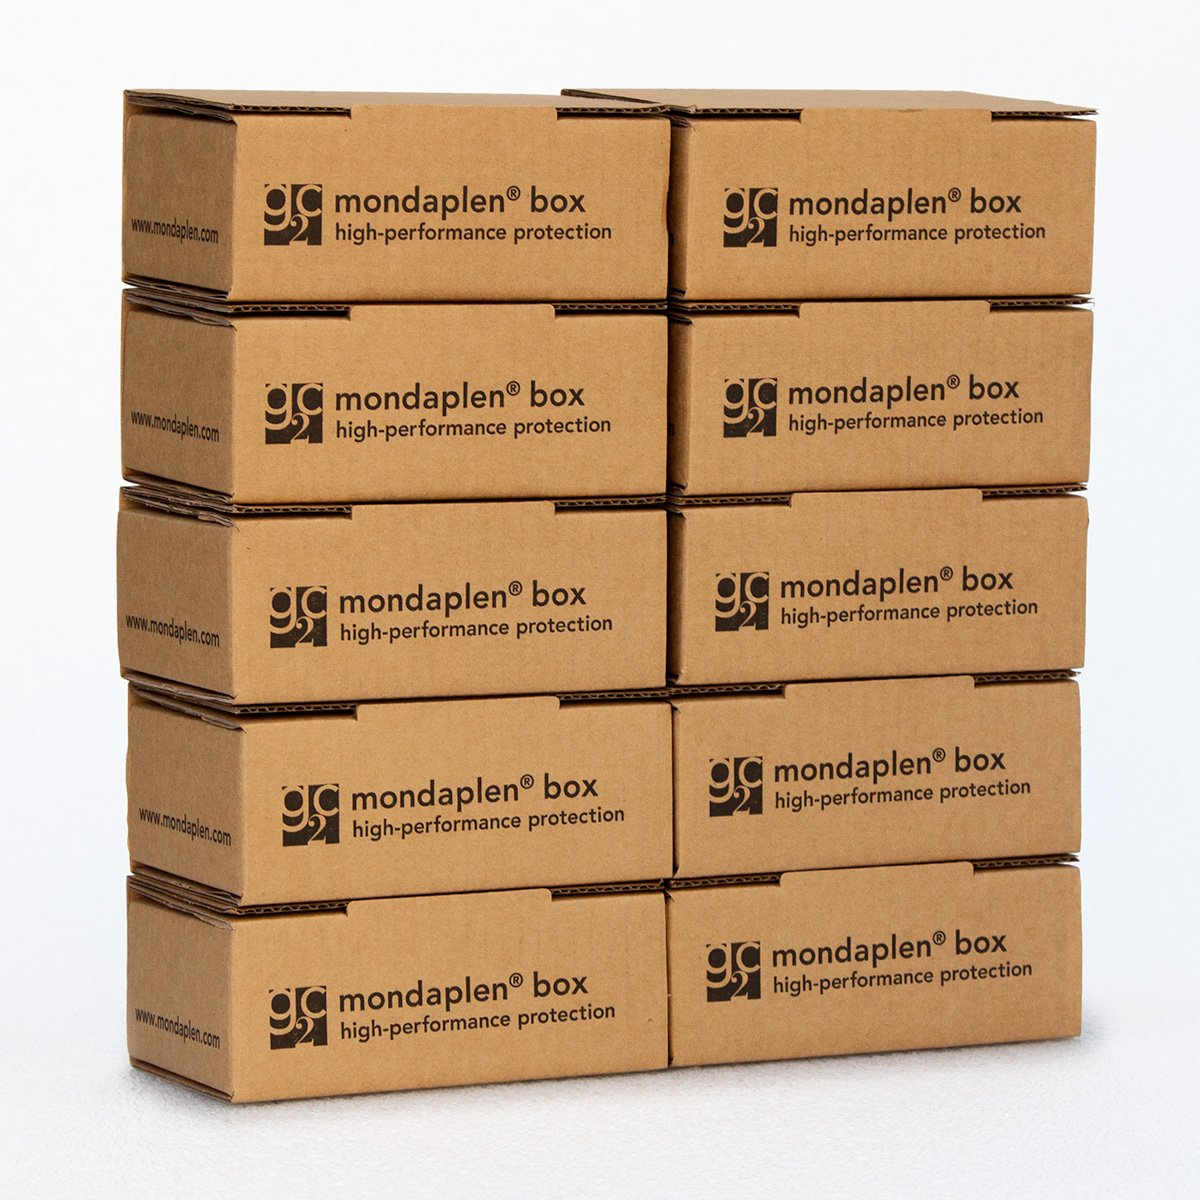 """a patented high-performance polyethylene foam to protect your delicate items 8.1/"""" x 5.2/"""" x 2.6/"""" Mondaplen Box: 10 pre-assembled boxes for shipping or storage D lined with Mondaplen 20,7cm x 13,2cm x 6,2cm"""